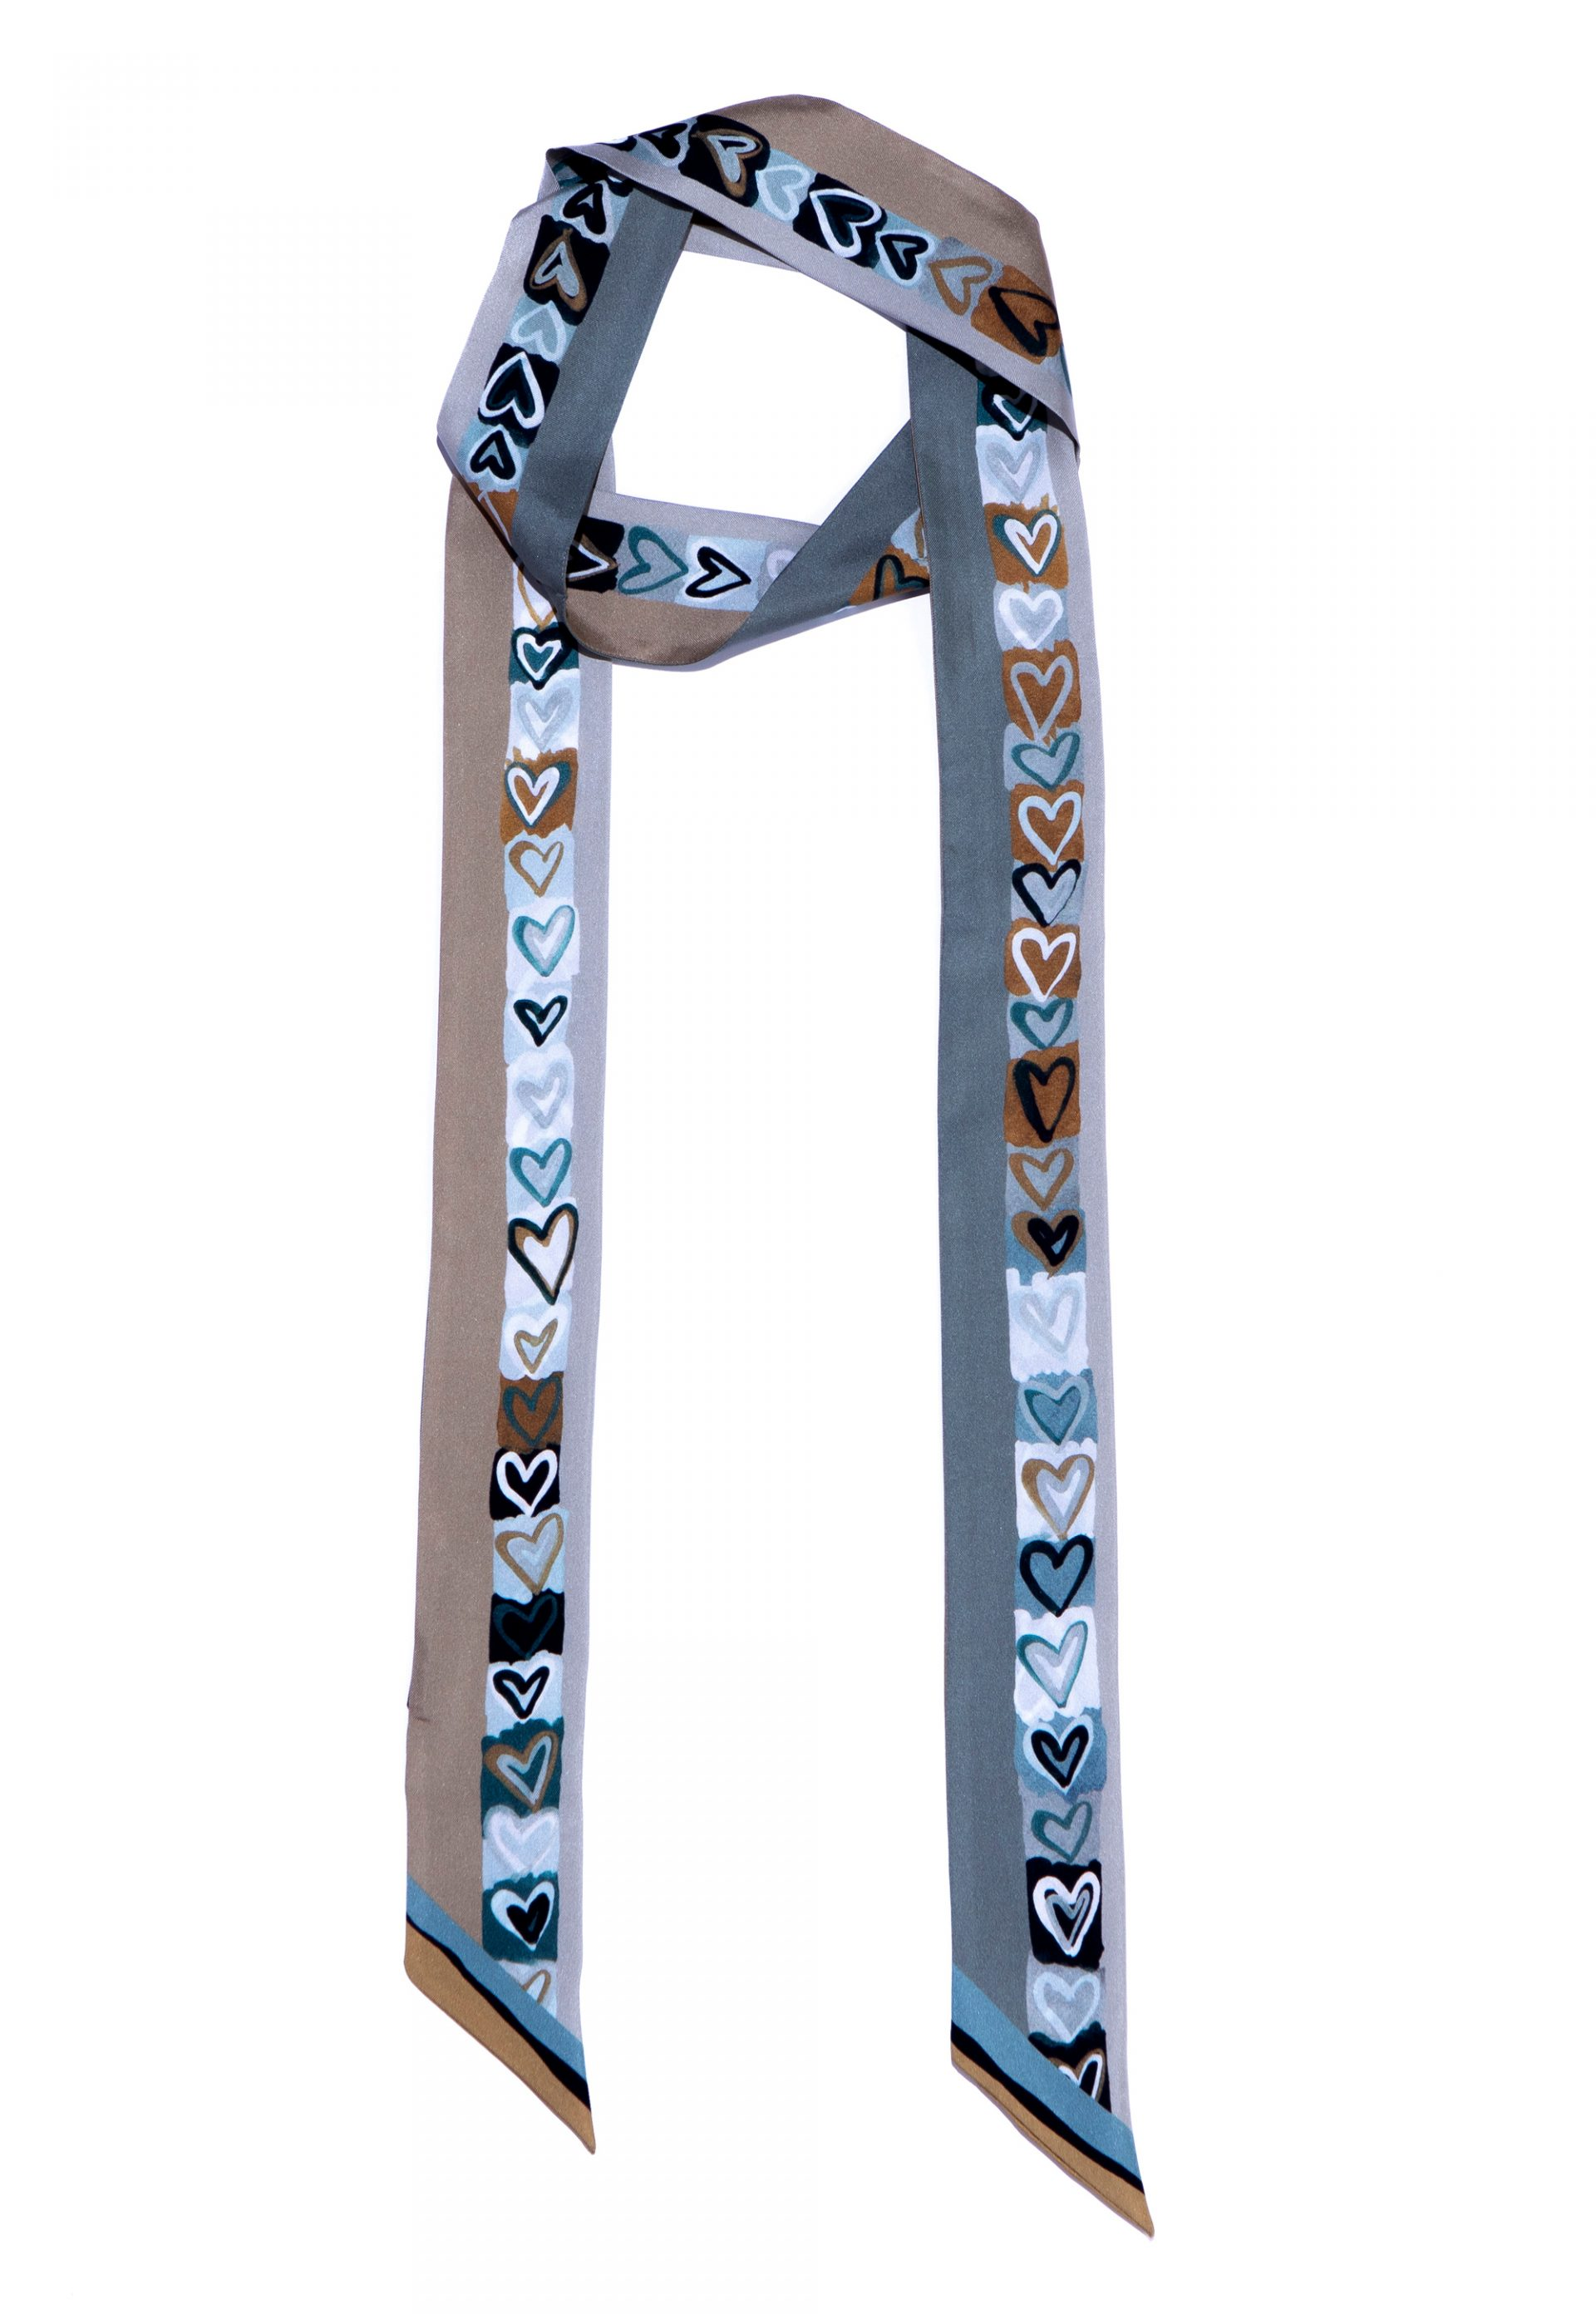 skinny silk scarf in grey tones with printed hearts in black and white